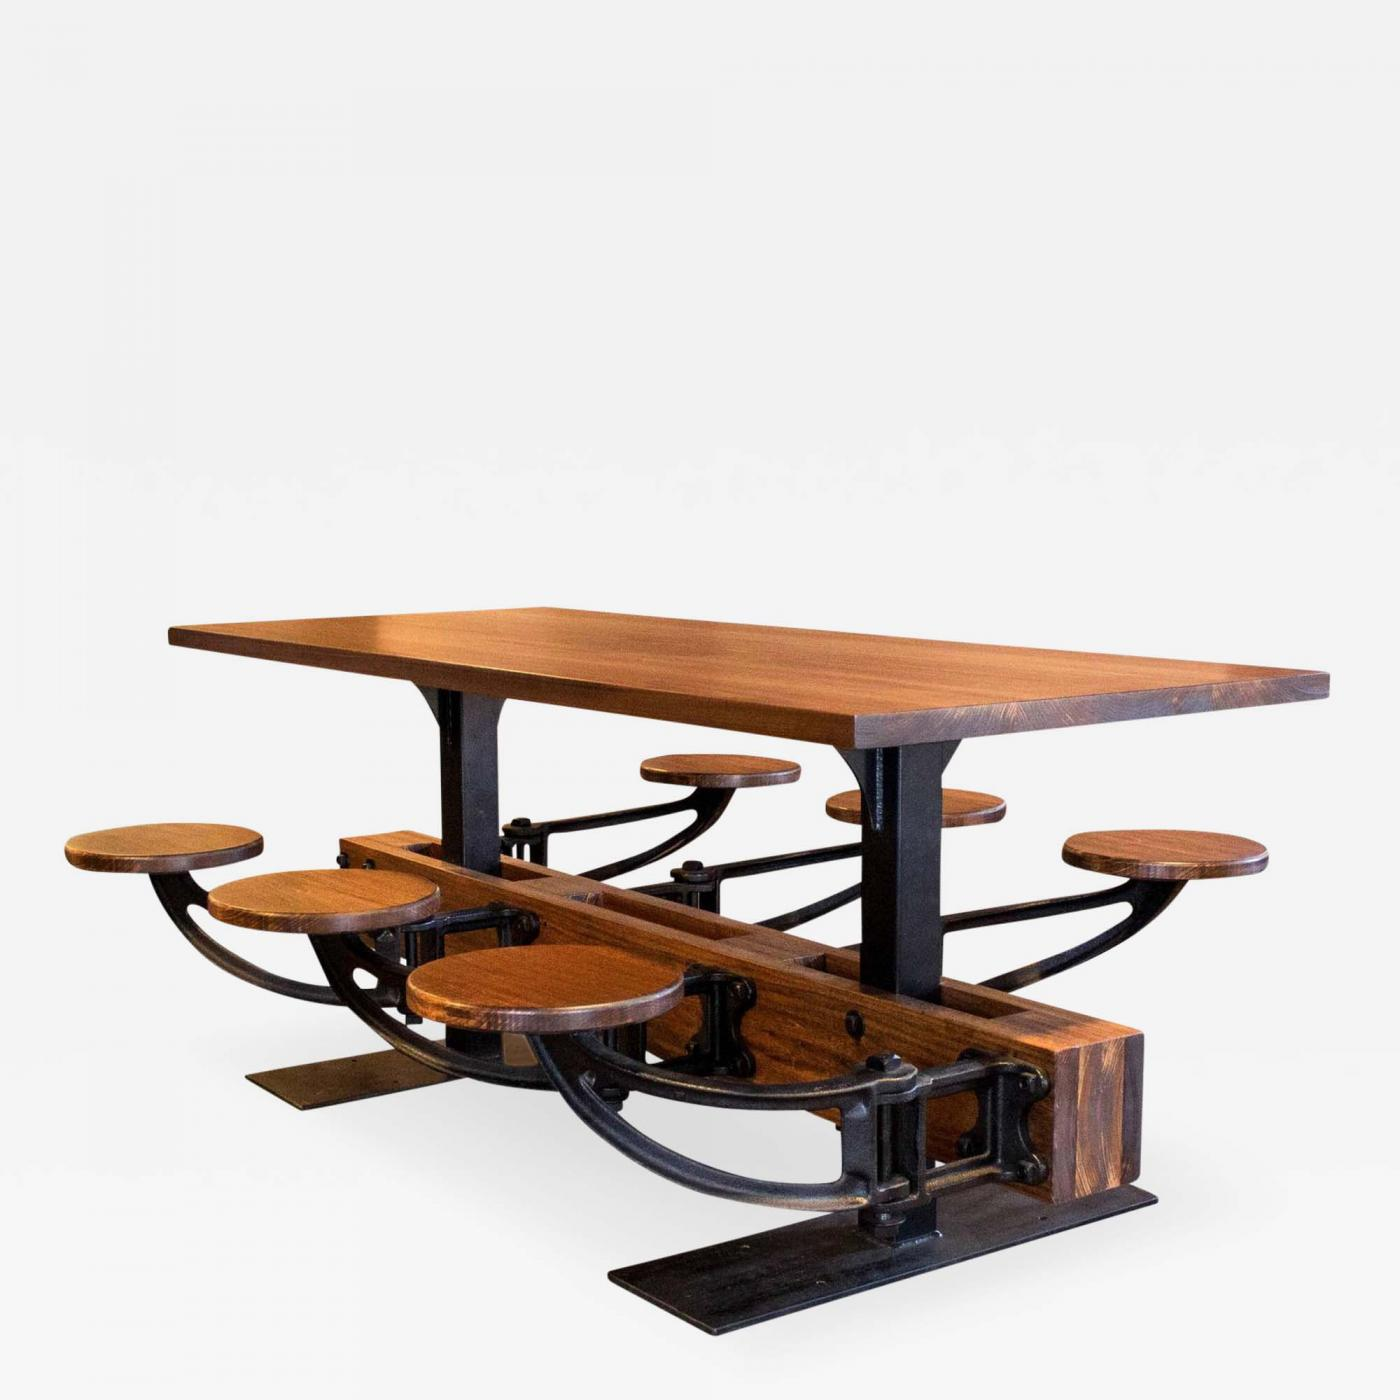 Bench Dining Vintage Industrial Bespoke Dining Table Bench: Vintage Industrial Iron Cafeteria Swing Out